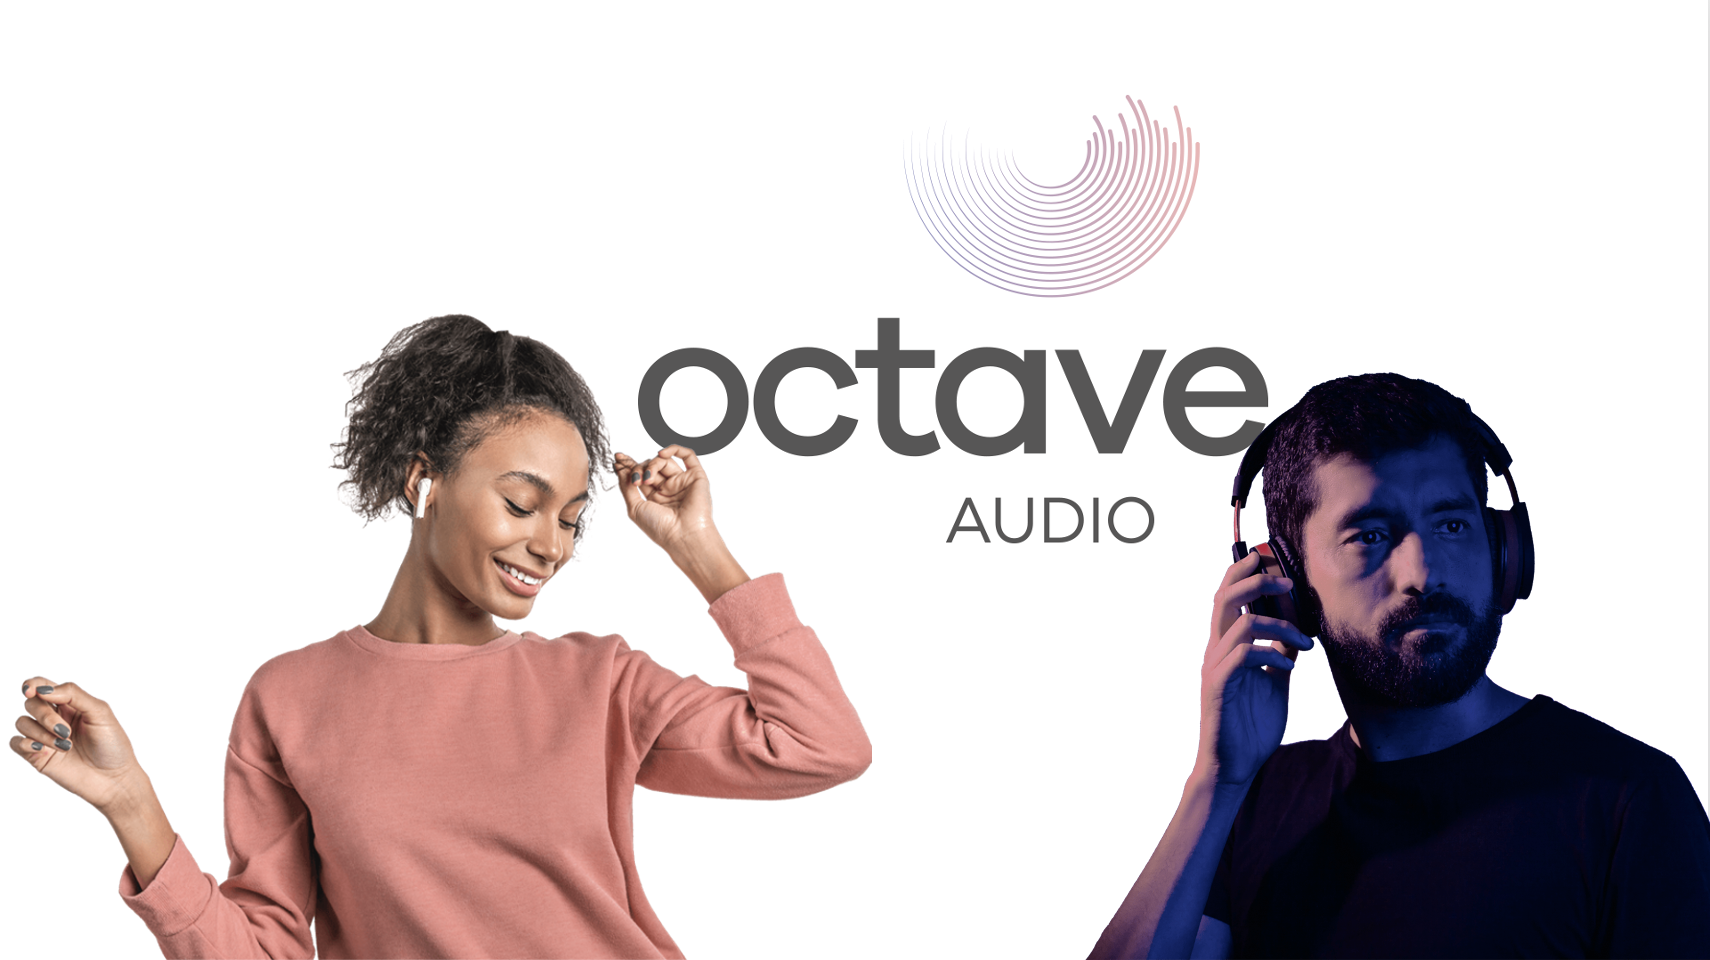 Octave people in headphones and logo